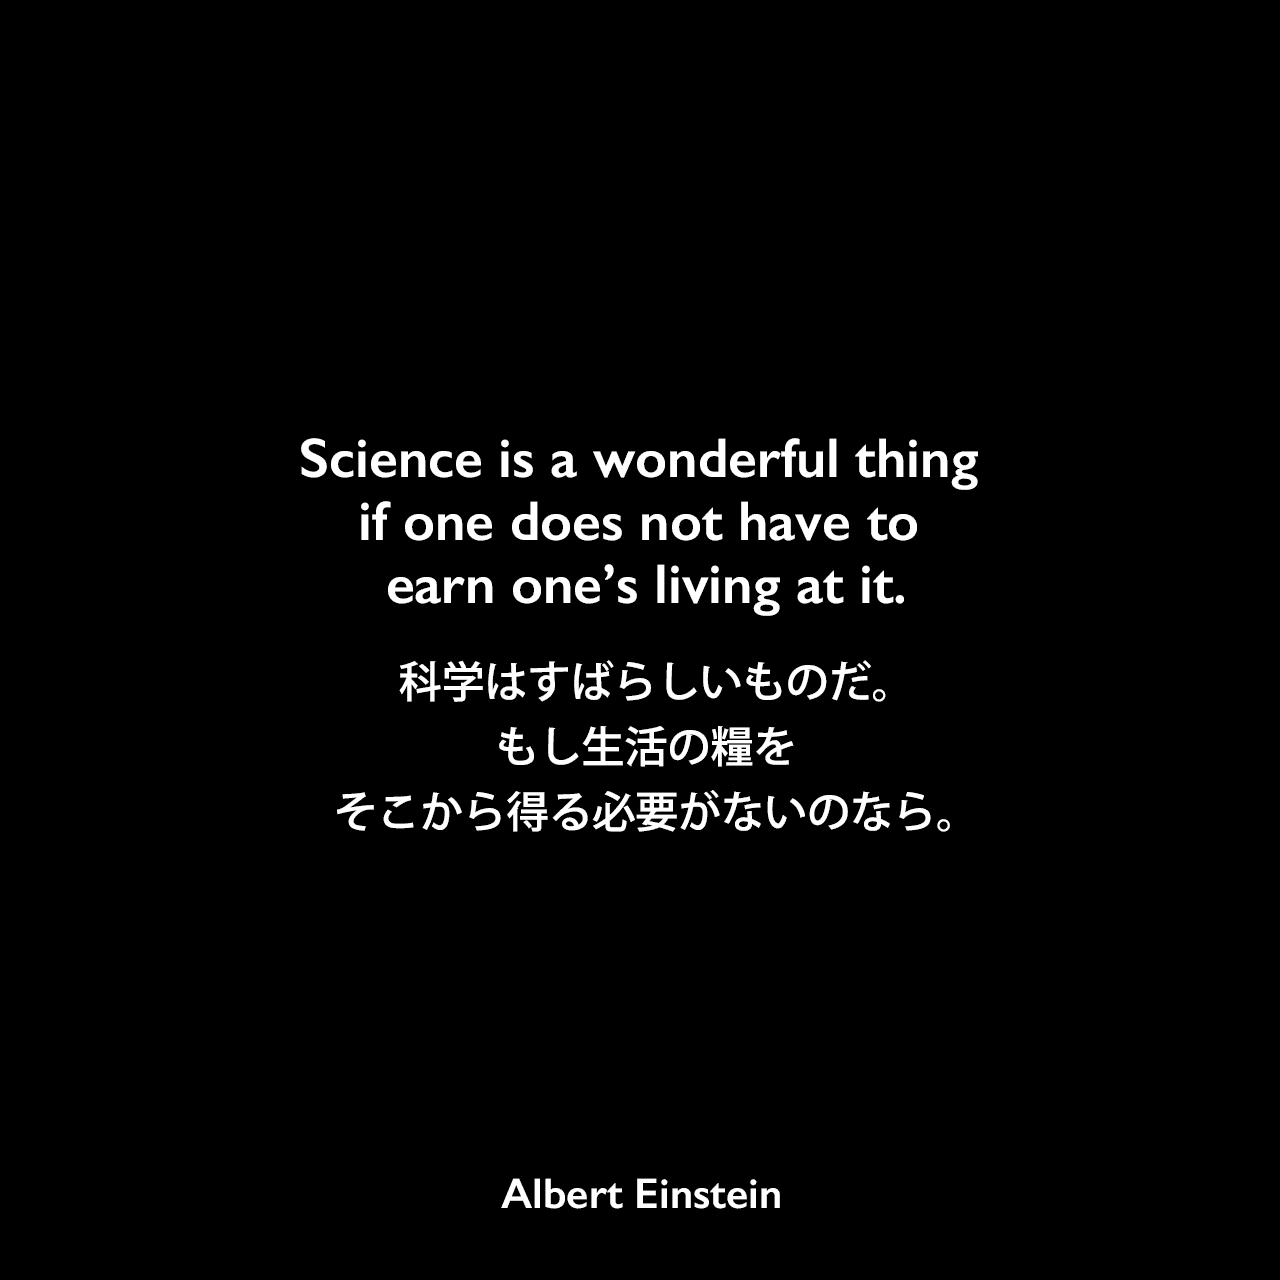 Science is a wonderful thing if one does not have to earn one's living at it.科学はすばらしいものだ。もし生活の糧をそこから得る必要がないのなら。- カリフォルニアの学生 E. Holzapfelへ宛てた手紙(1951年3月)よりAlbert Einstein